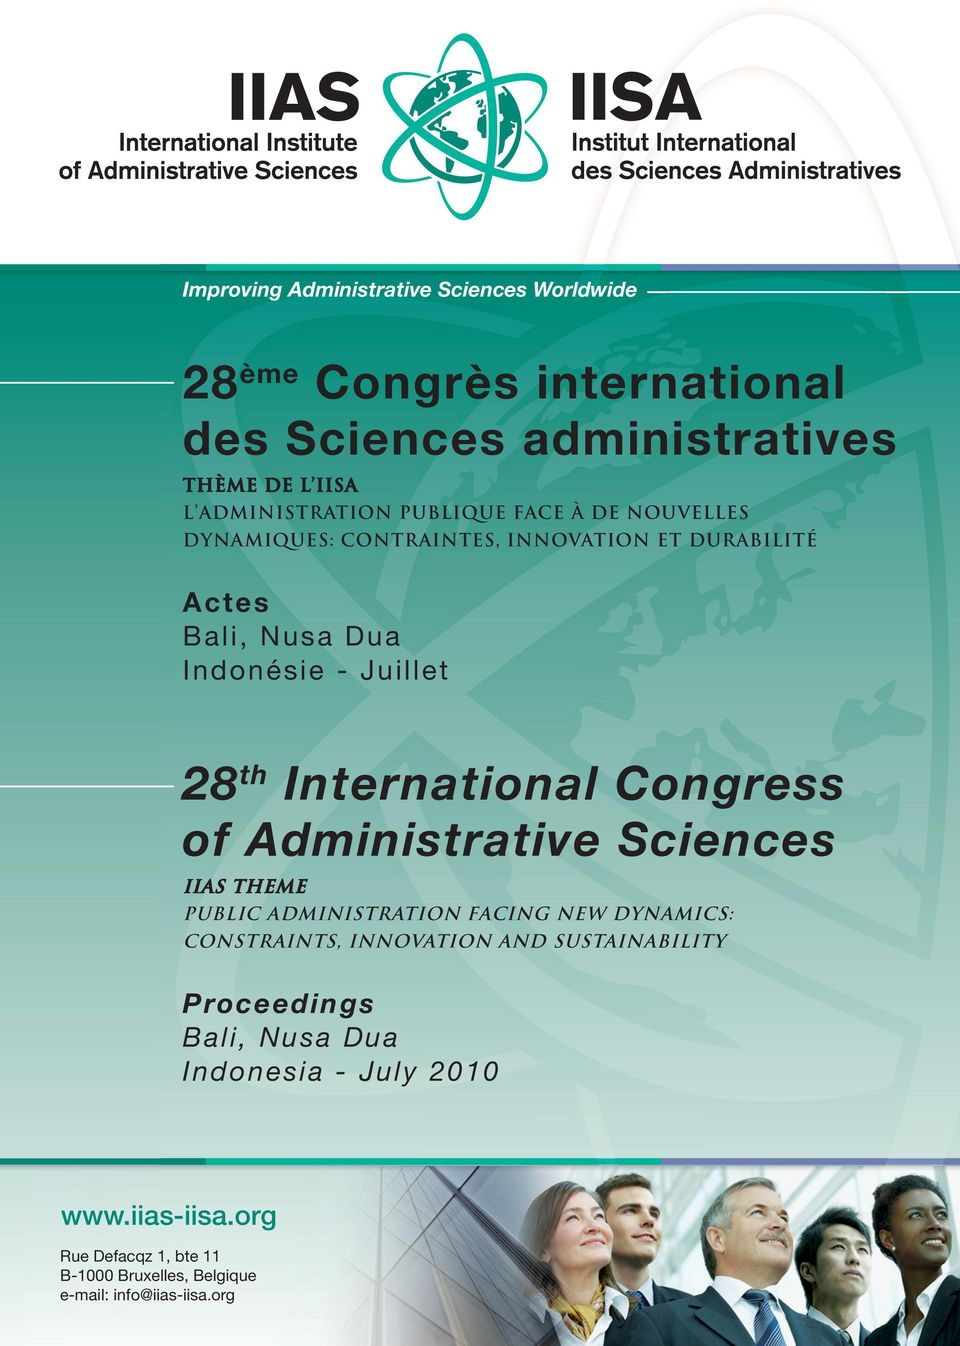 International Congress of Administrative Sciences IIAS Theme Public Administration facing New Dynamics: Constraints, Innovation and